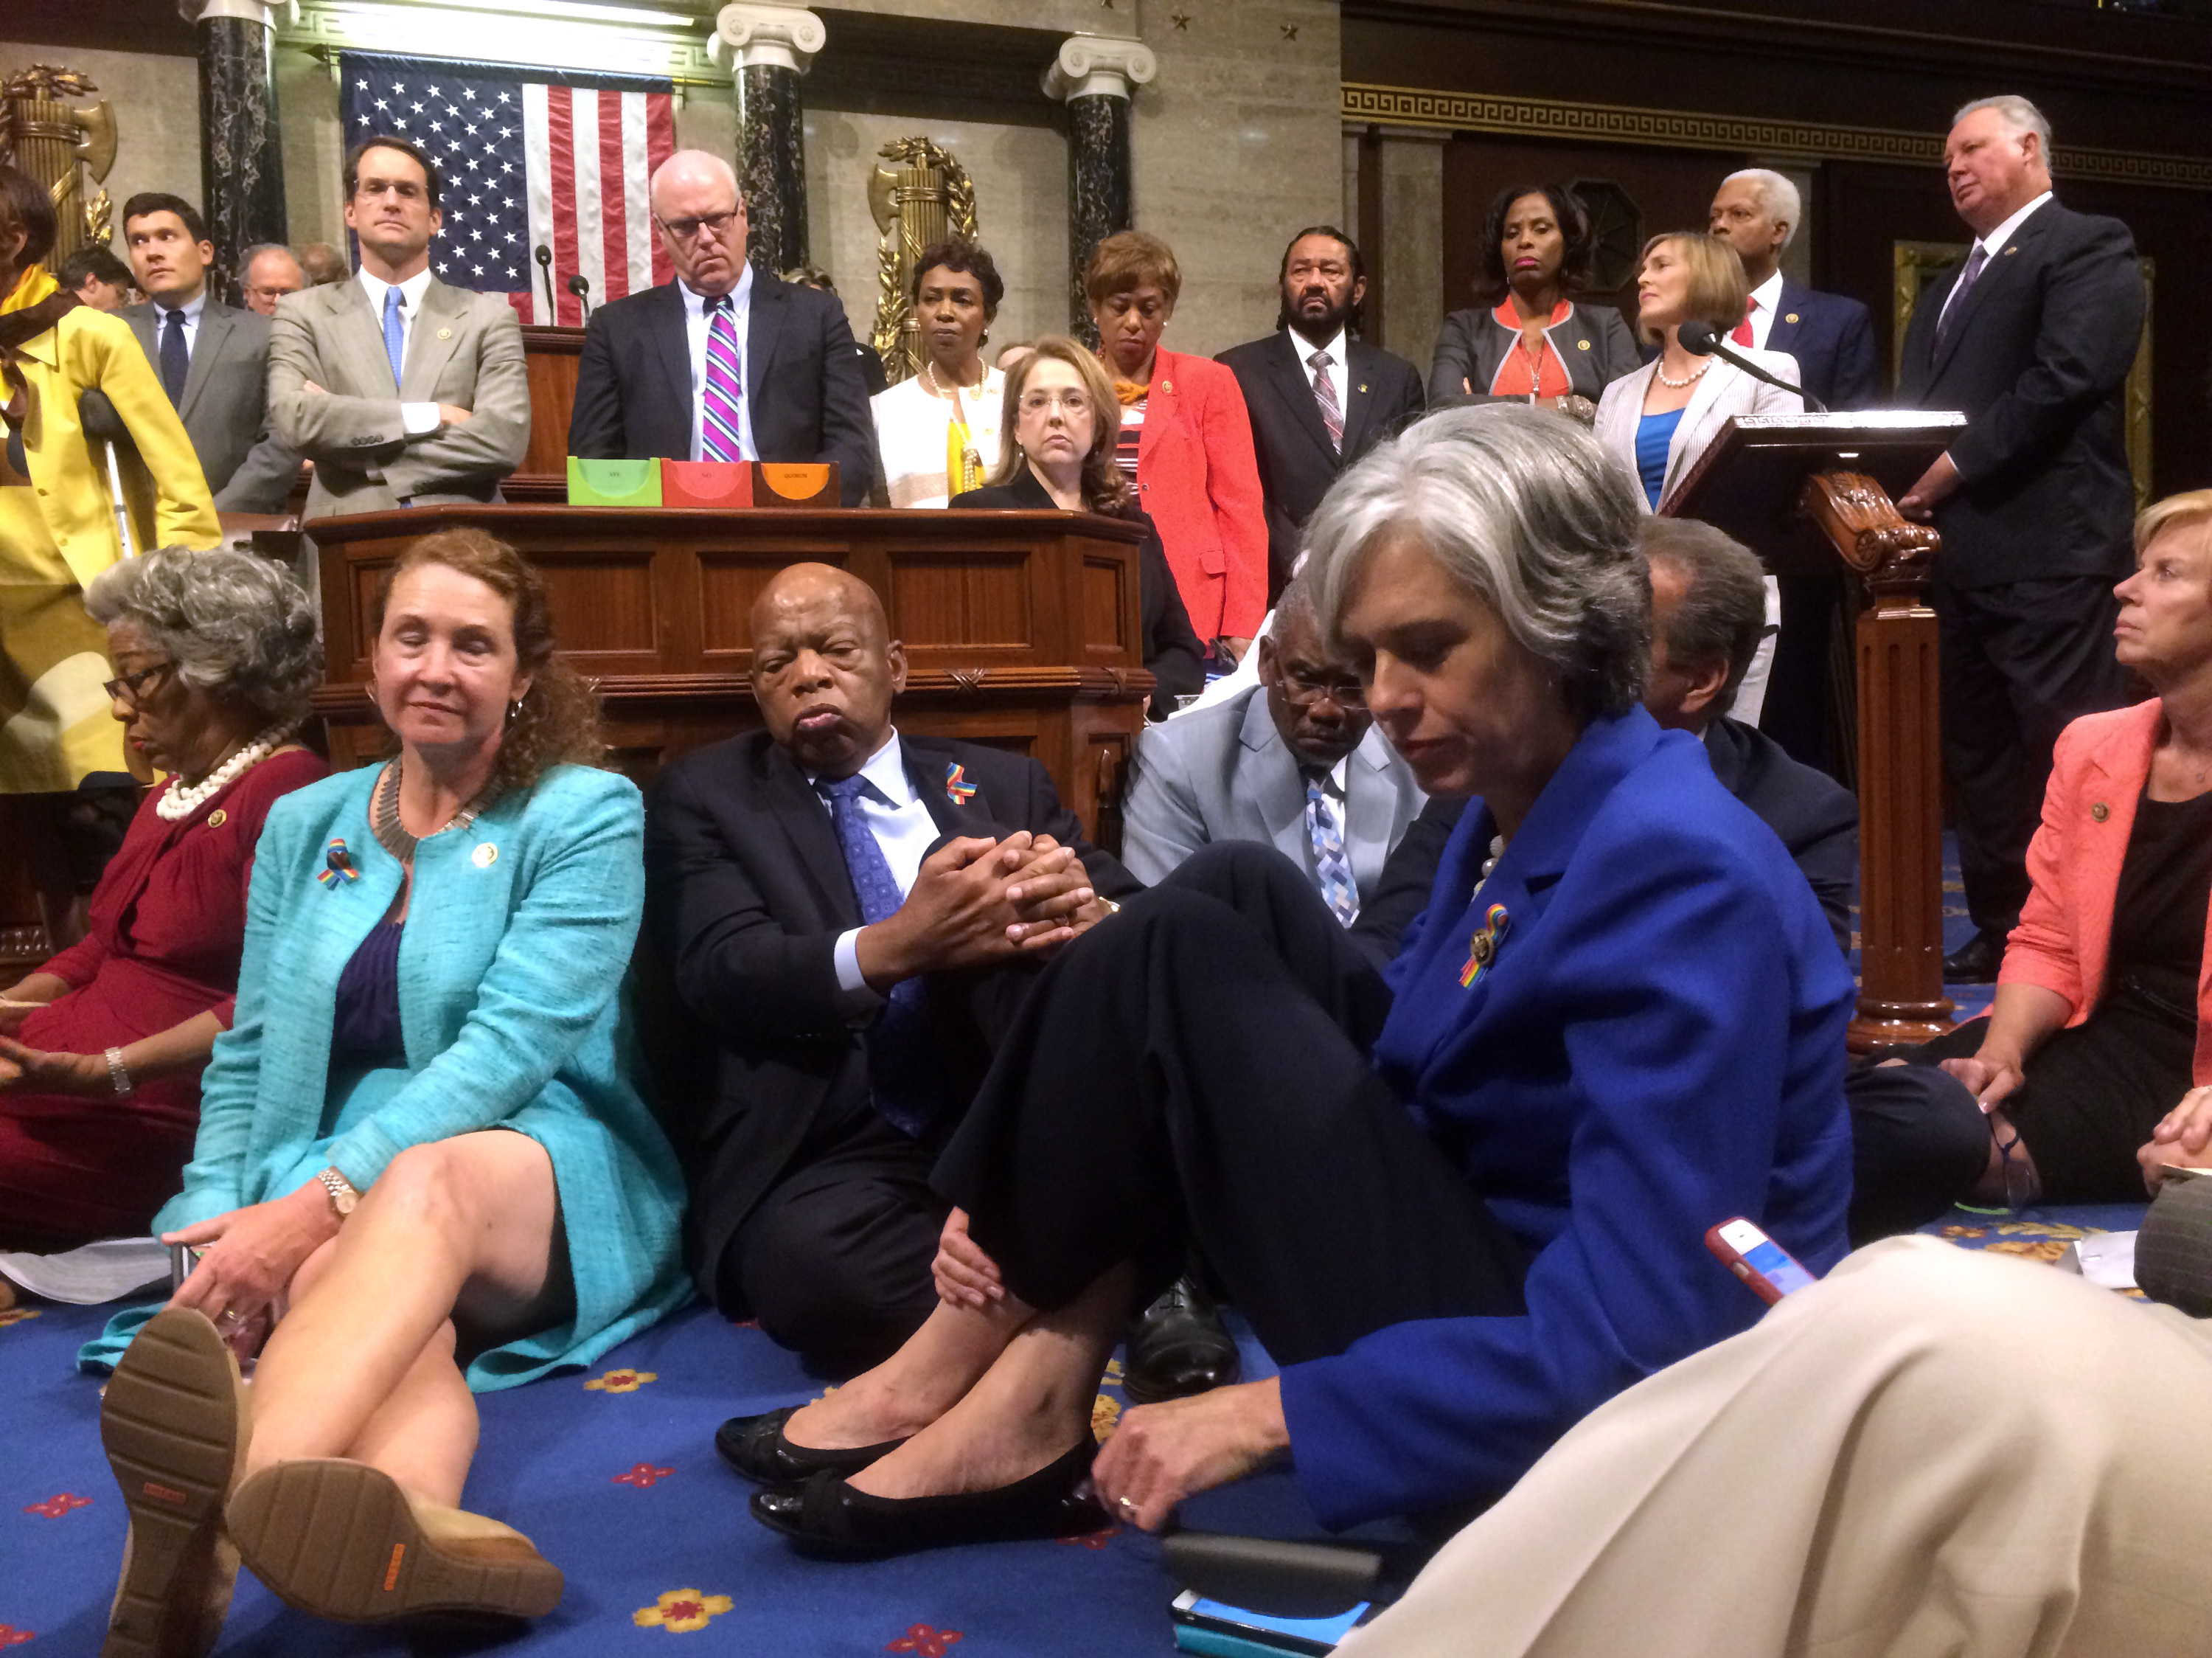 Demanding Action On Gun Control, House Democrats Stage Sit-In